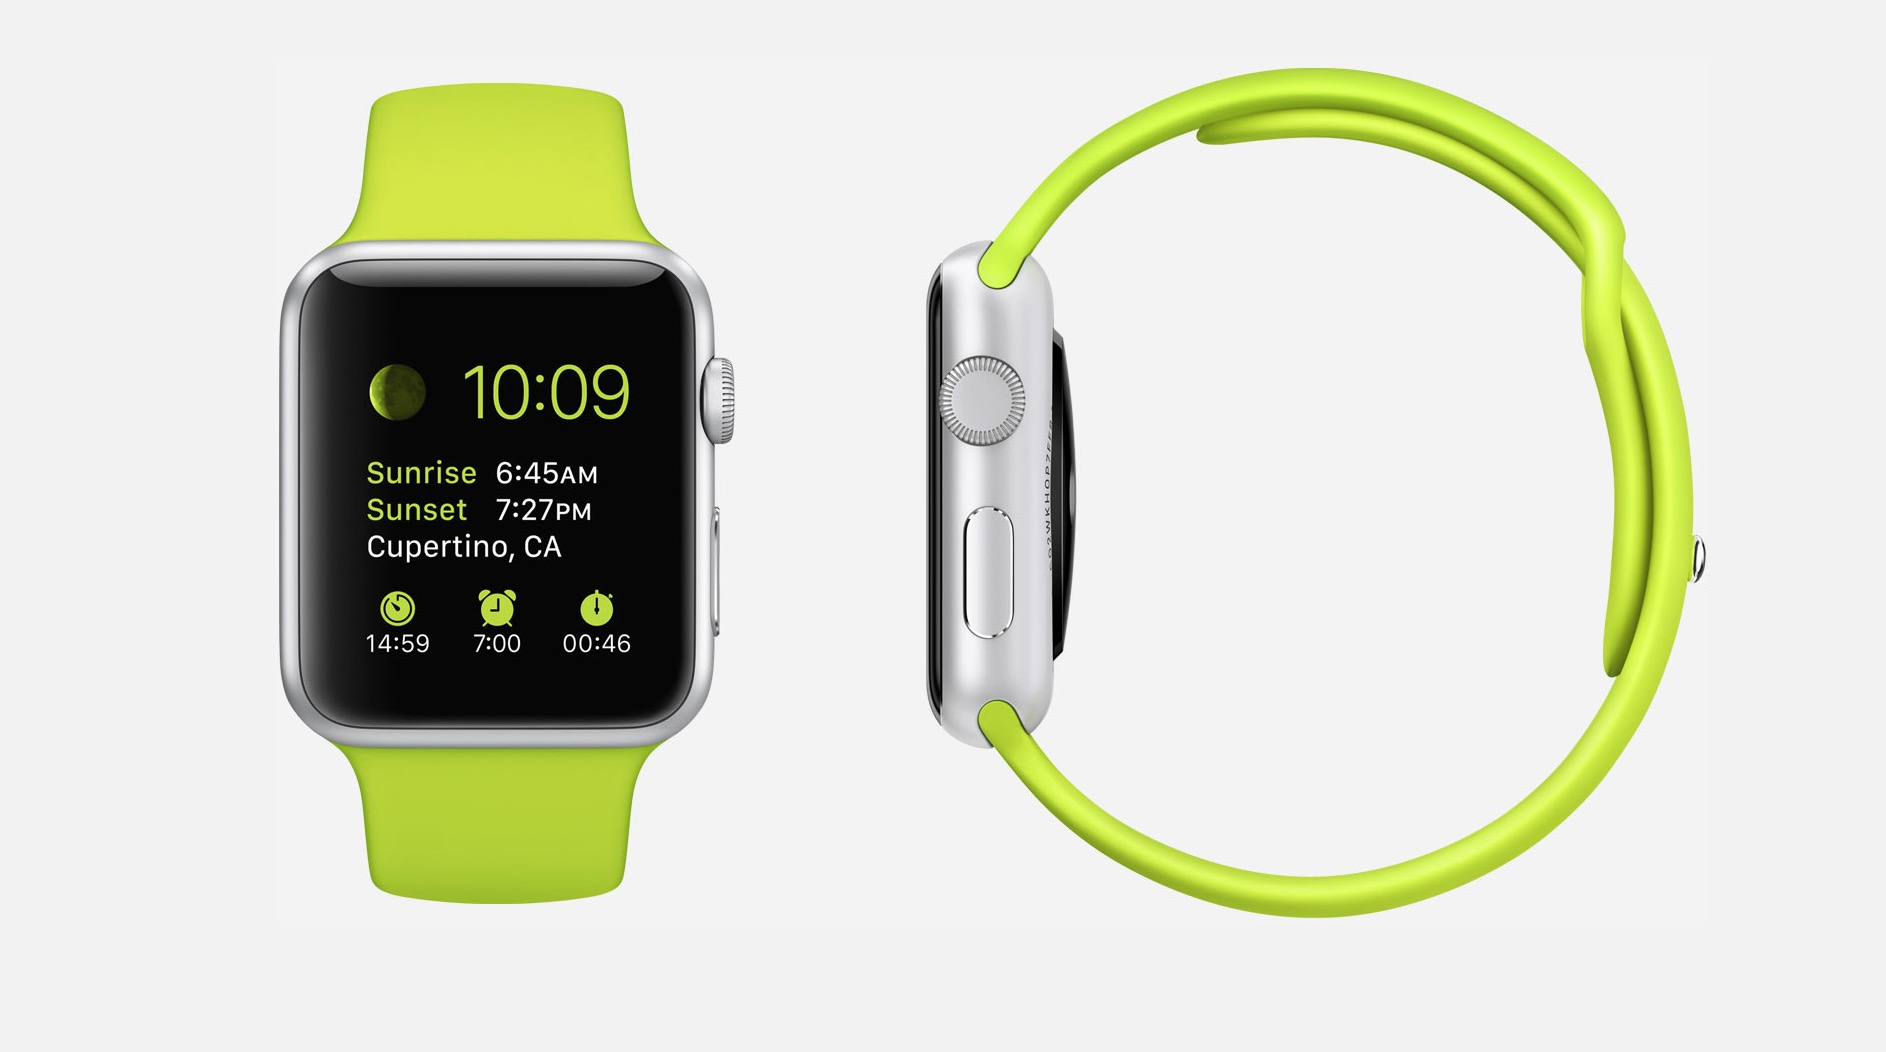 What will be different about the Apple Watch launch?